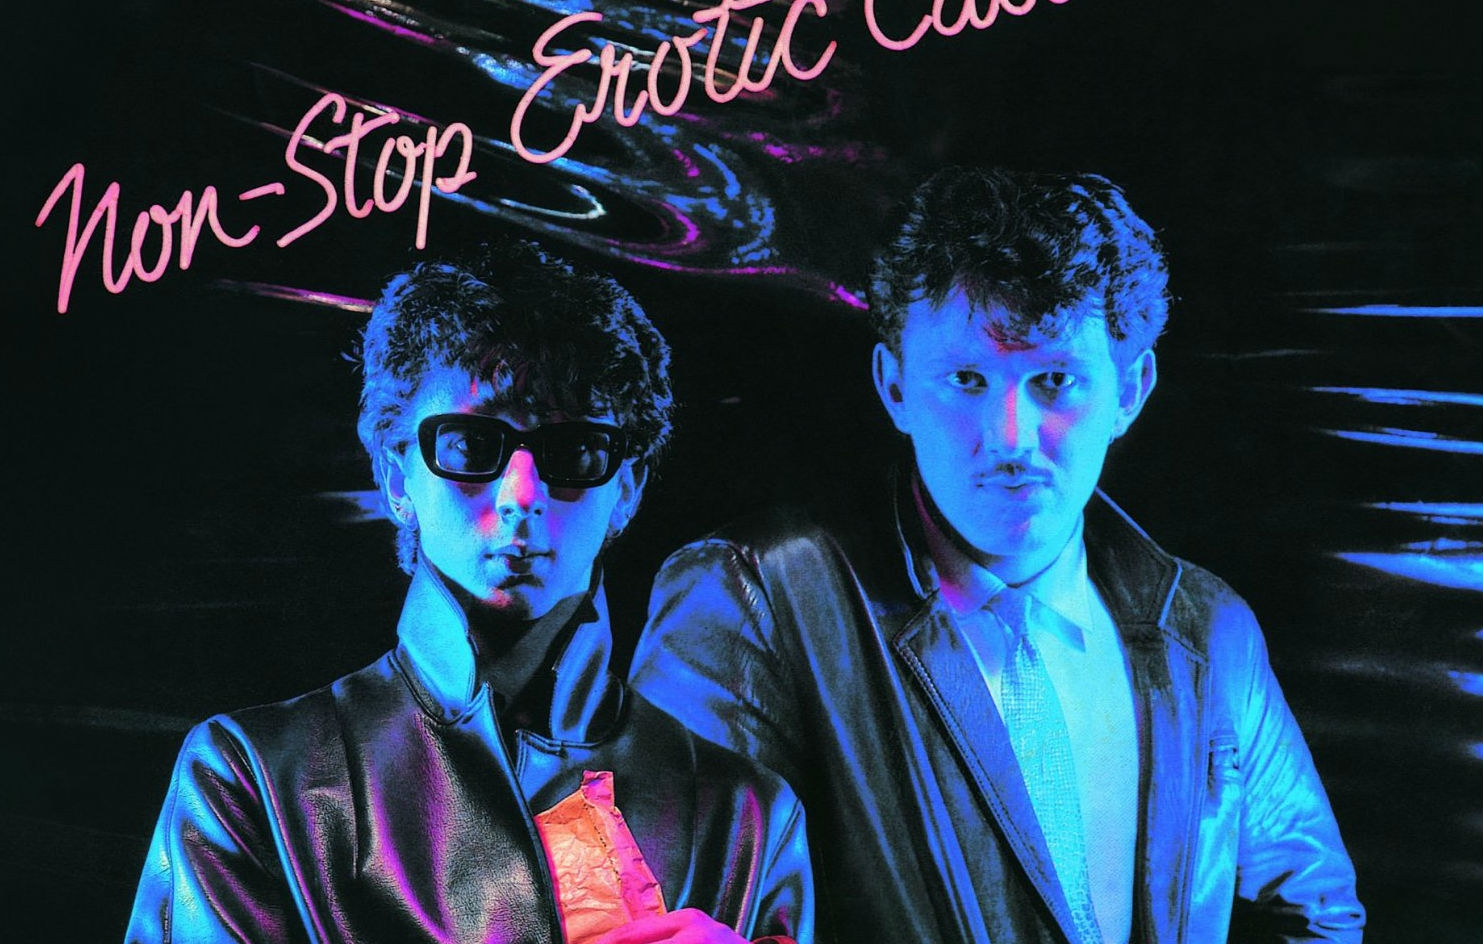 Keychains and Snowstorms: The Soft Cell Story